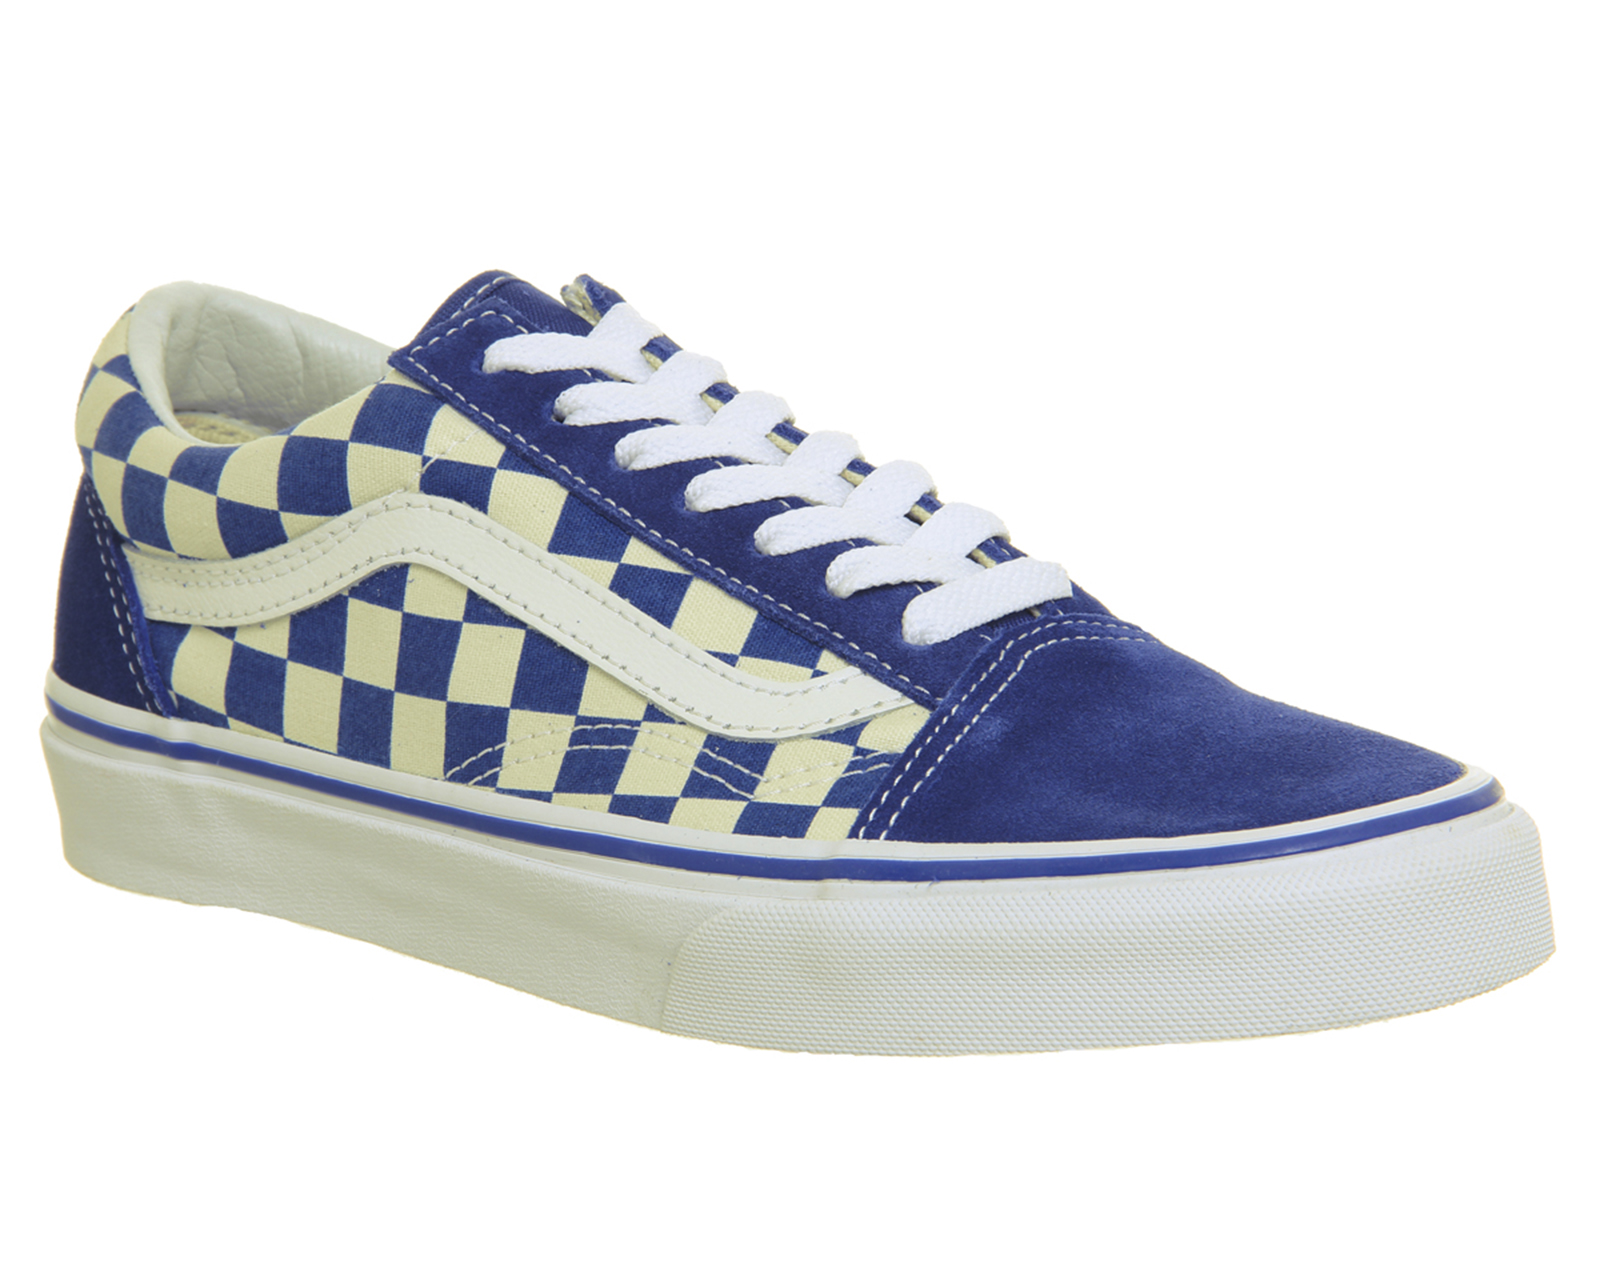 a449717d9960 Sentinel Mens Vans Blue Canvas Lace Up Trainers Size UK 8  Ex-Display